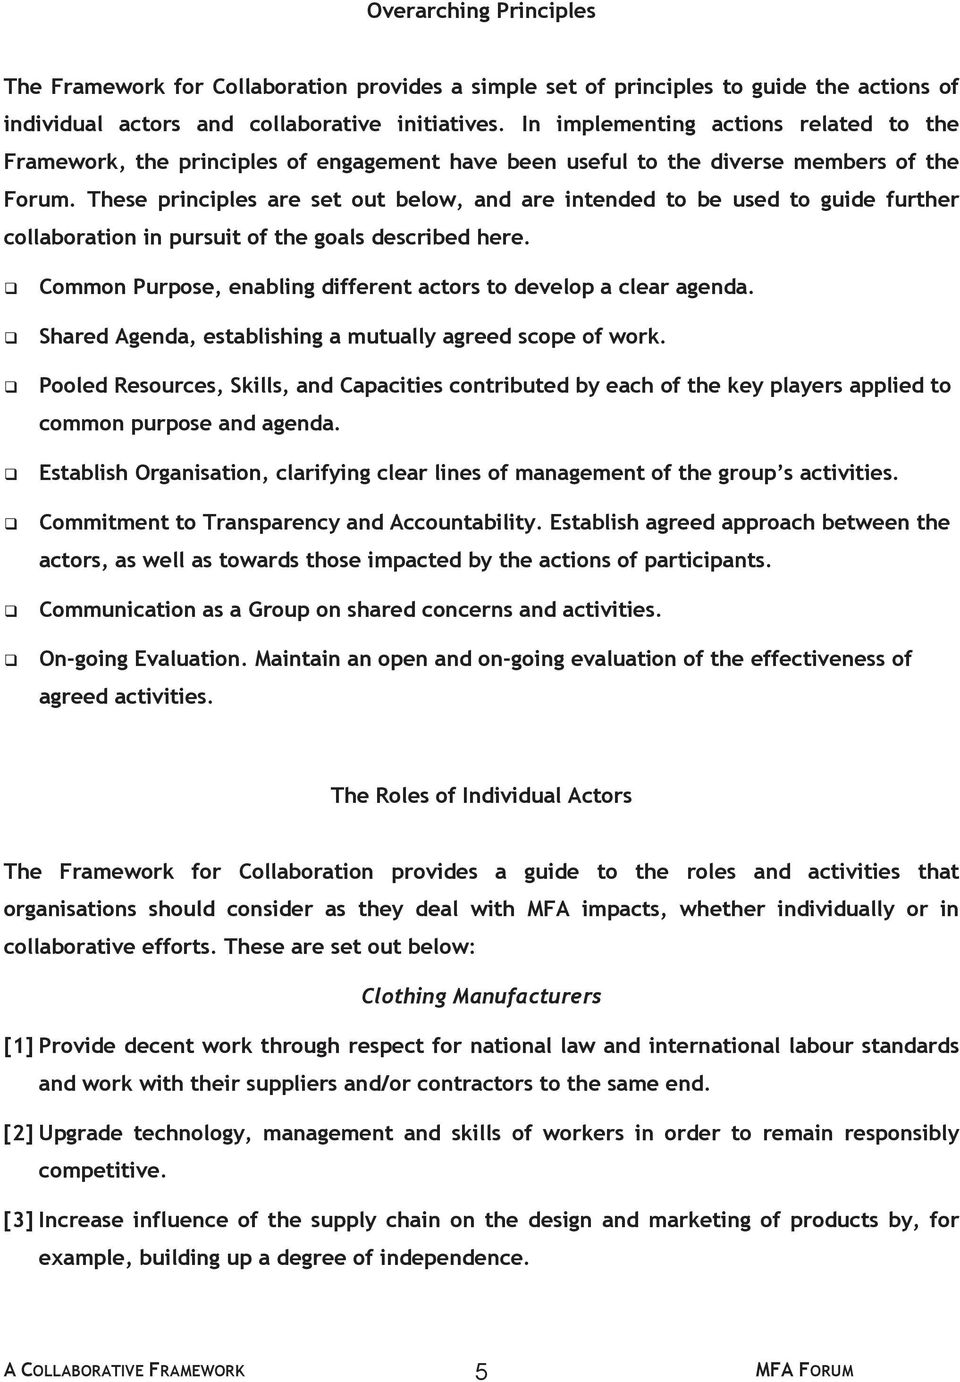 These principles are set out below, and are intended to be used to guide further collaboration in pursuit of the goals described here.